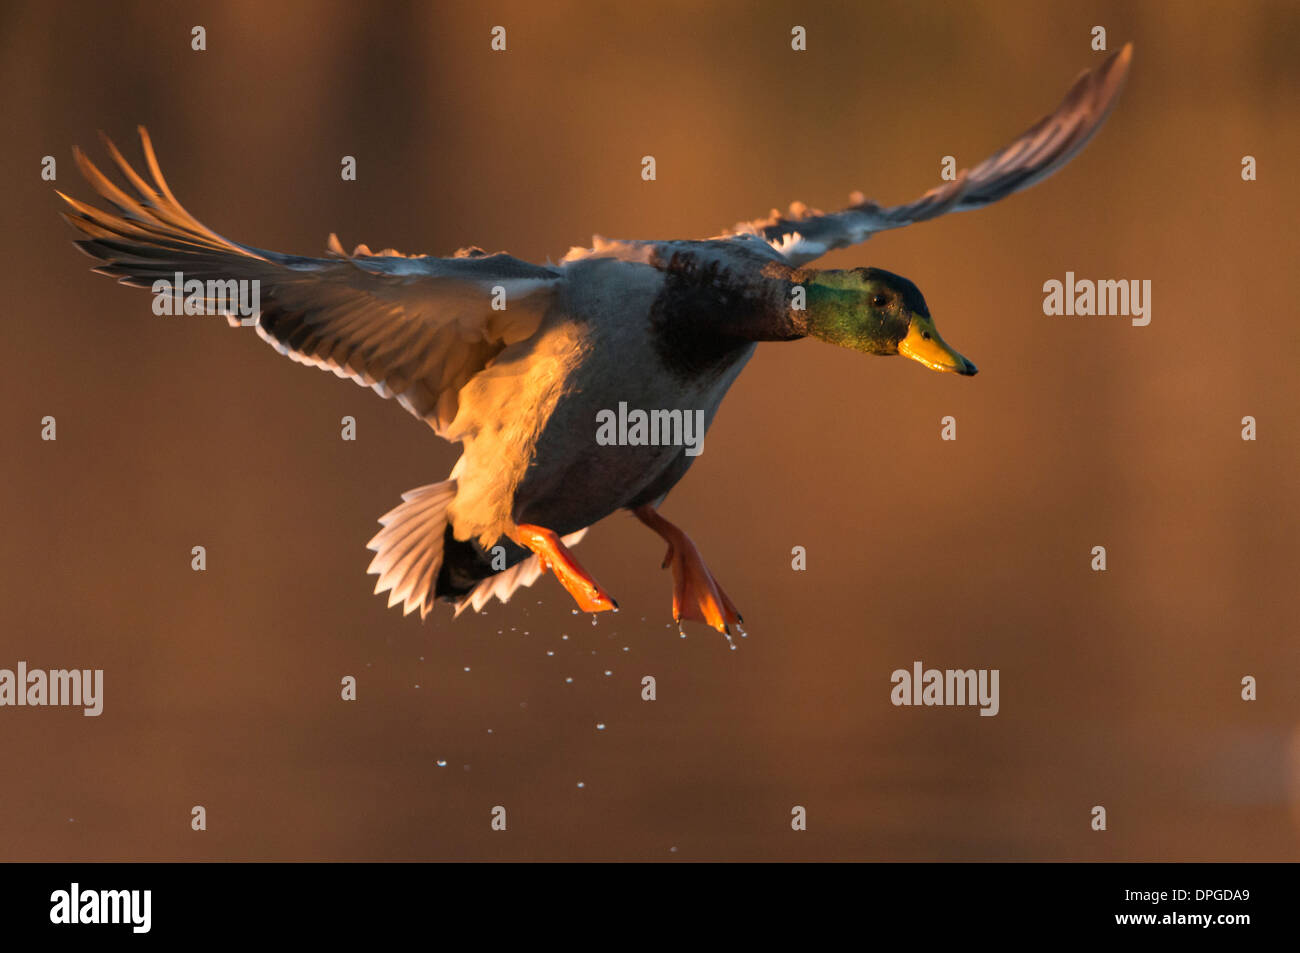 A mallard (Anas platyrhynchos) drake prepares to land on water, North Texas - Stock Image